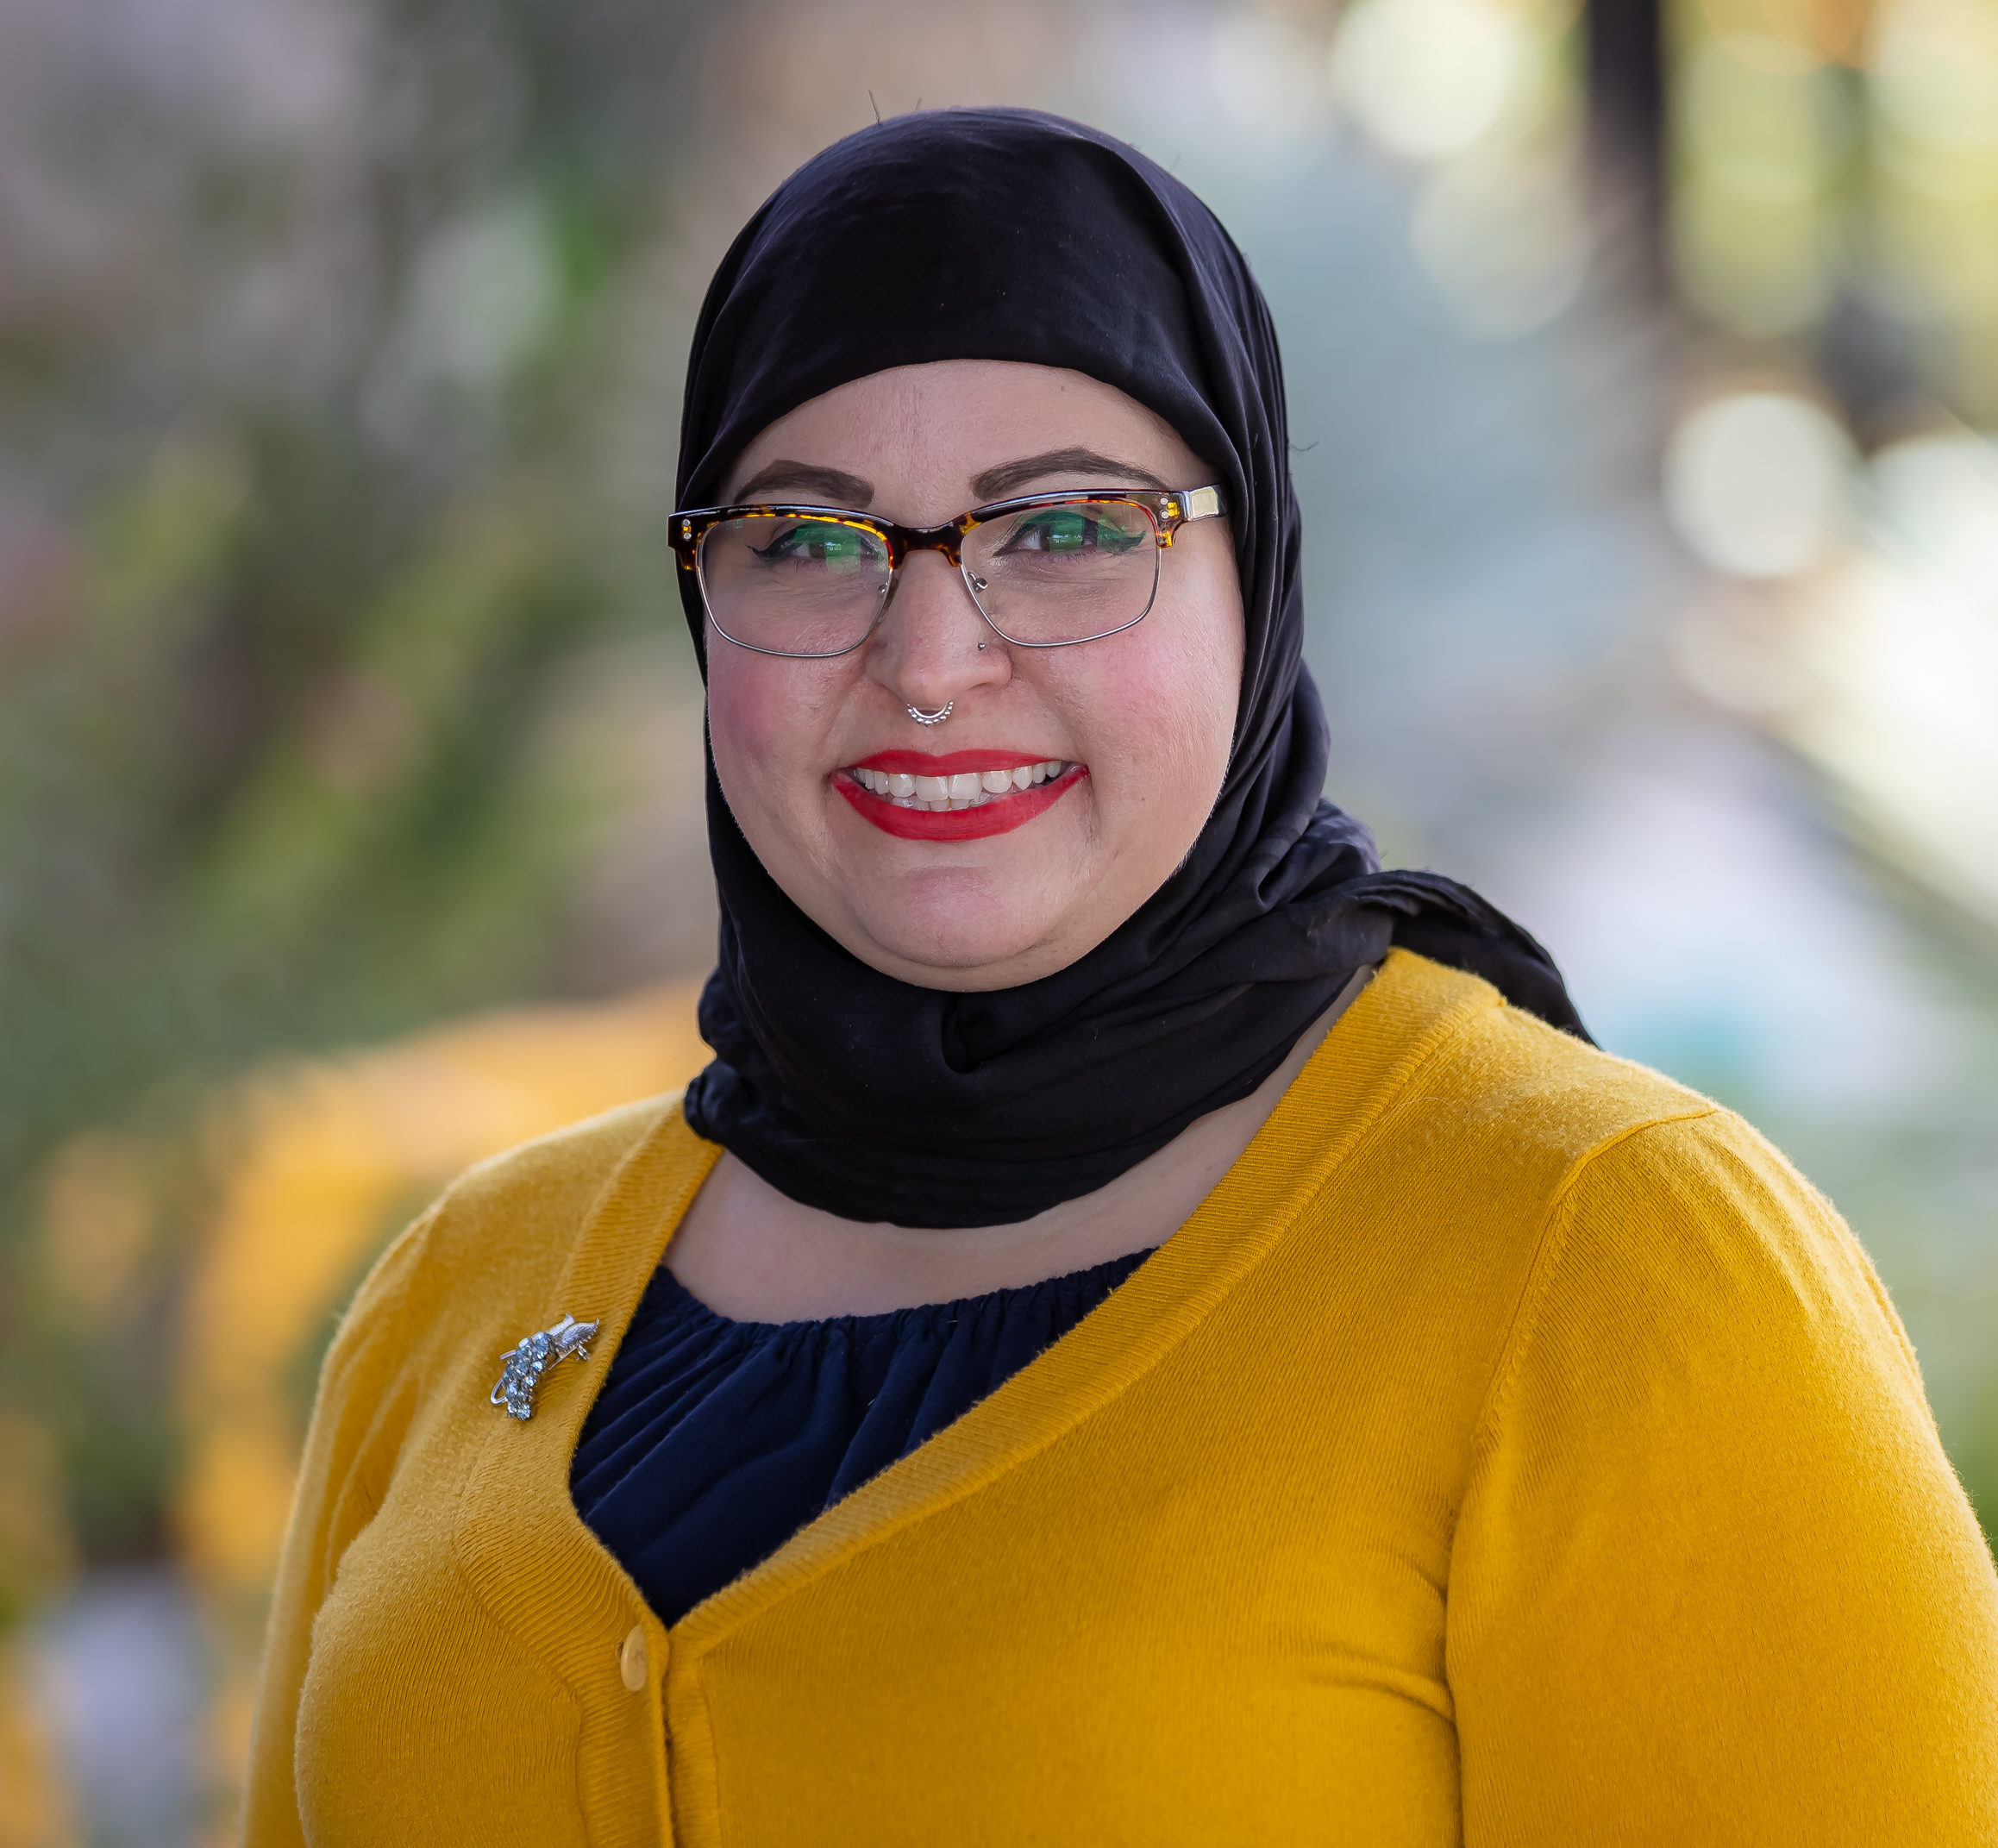 Mona Qafisheh| Vice President, Public Policy and Advocacy